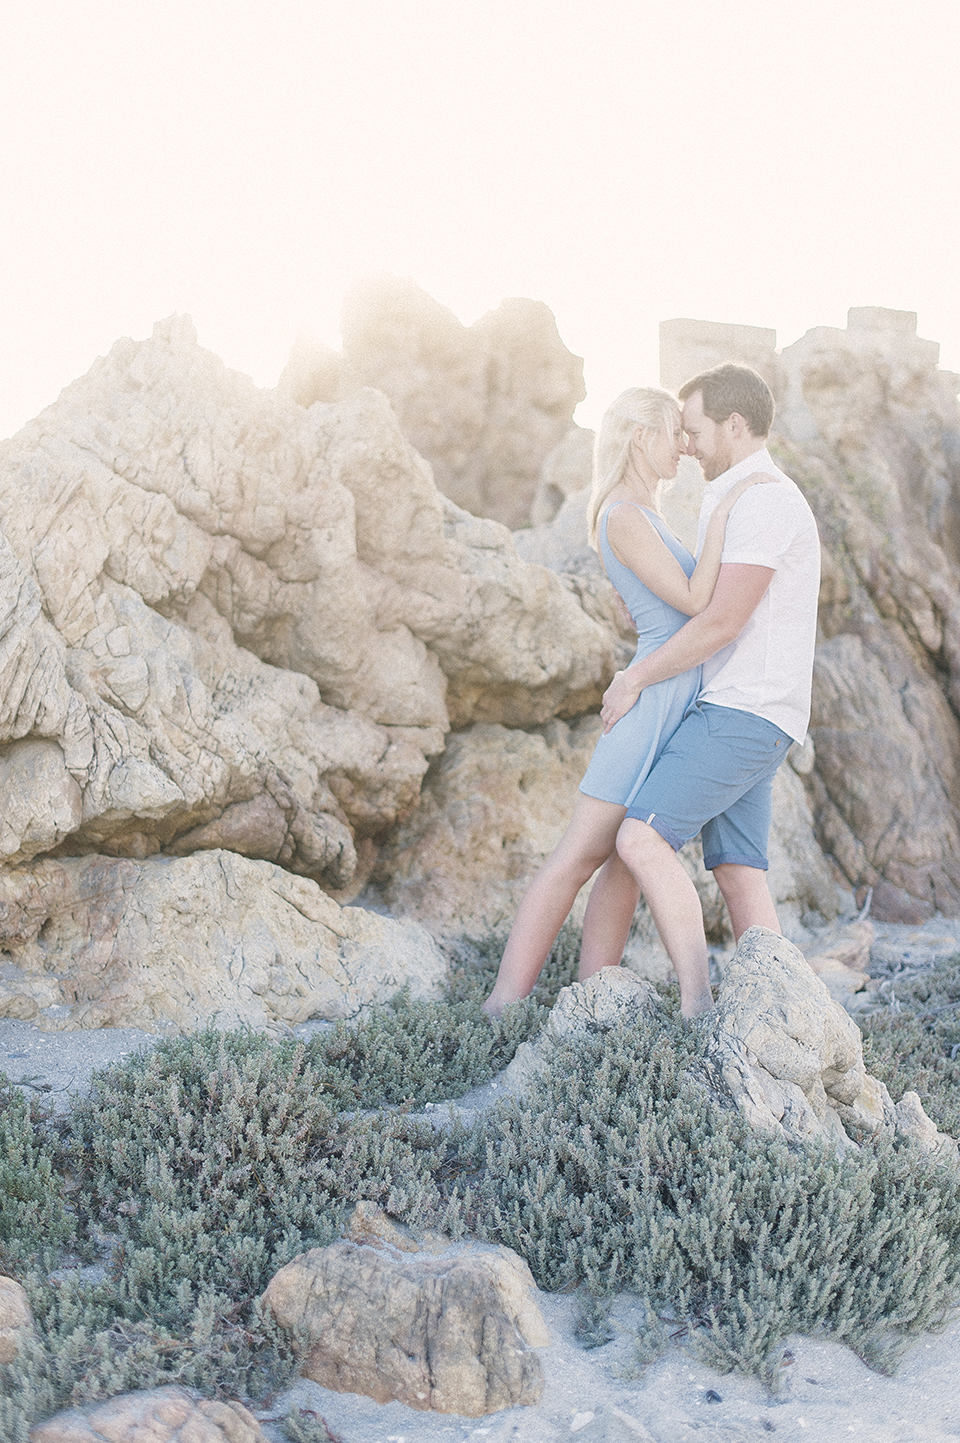 RyanParker_WeddingPhotographer_FineArt_CapeTown_EngagementSession_Hermanus_M&S_DSC_2501DSC_2528.jpg